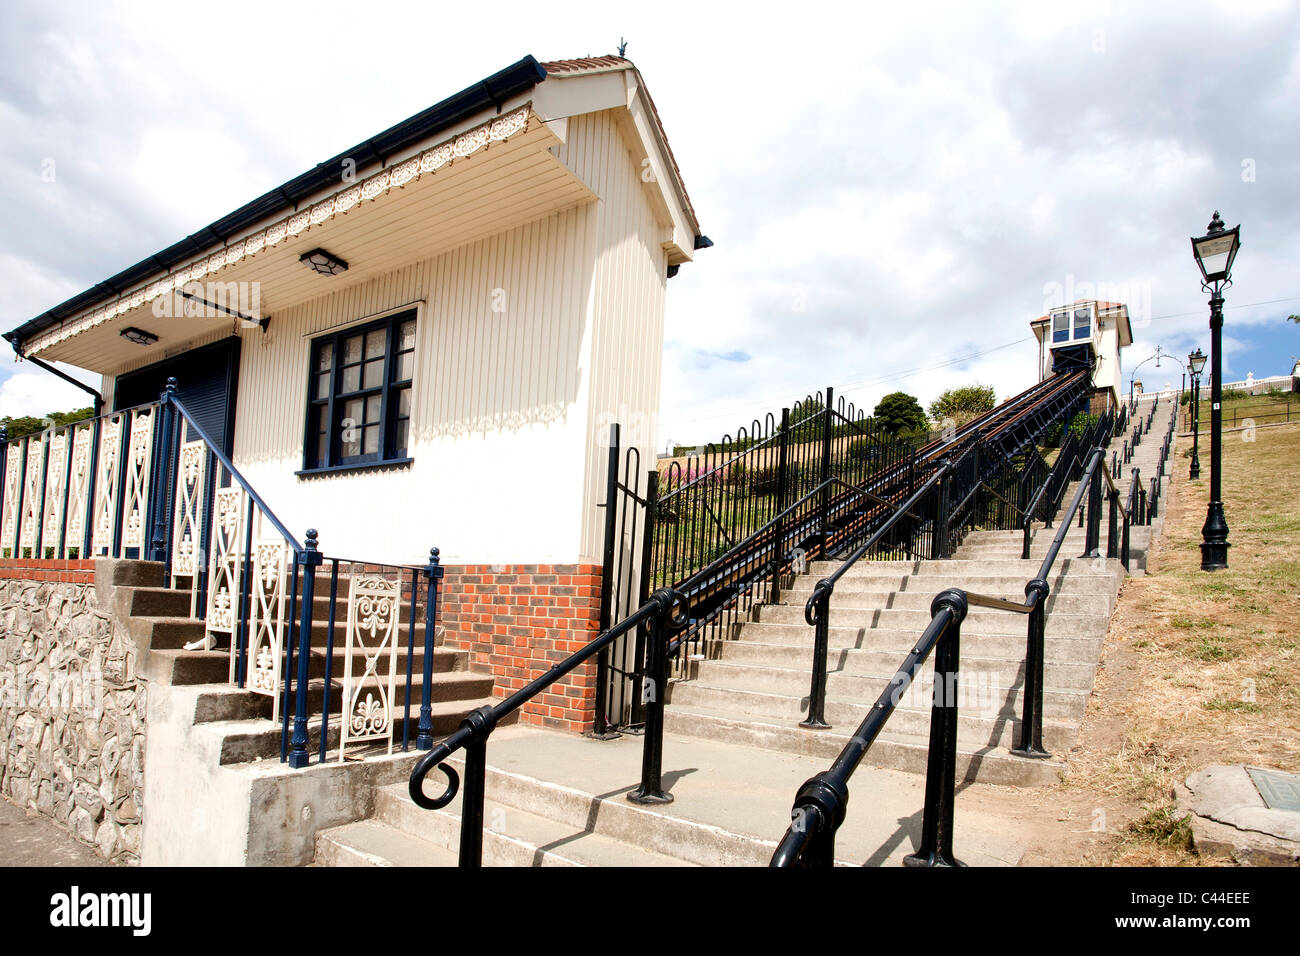 cliff railway lift at  Southend on Sea - Stock Image